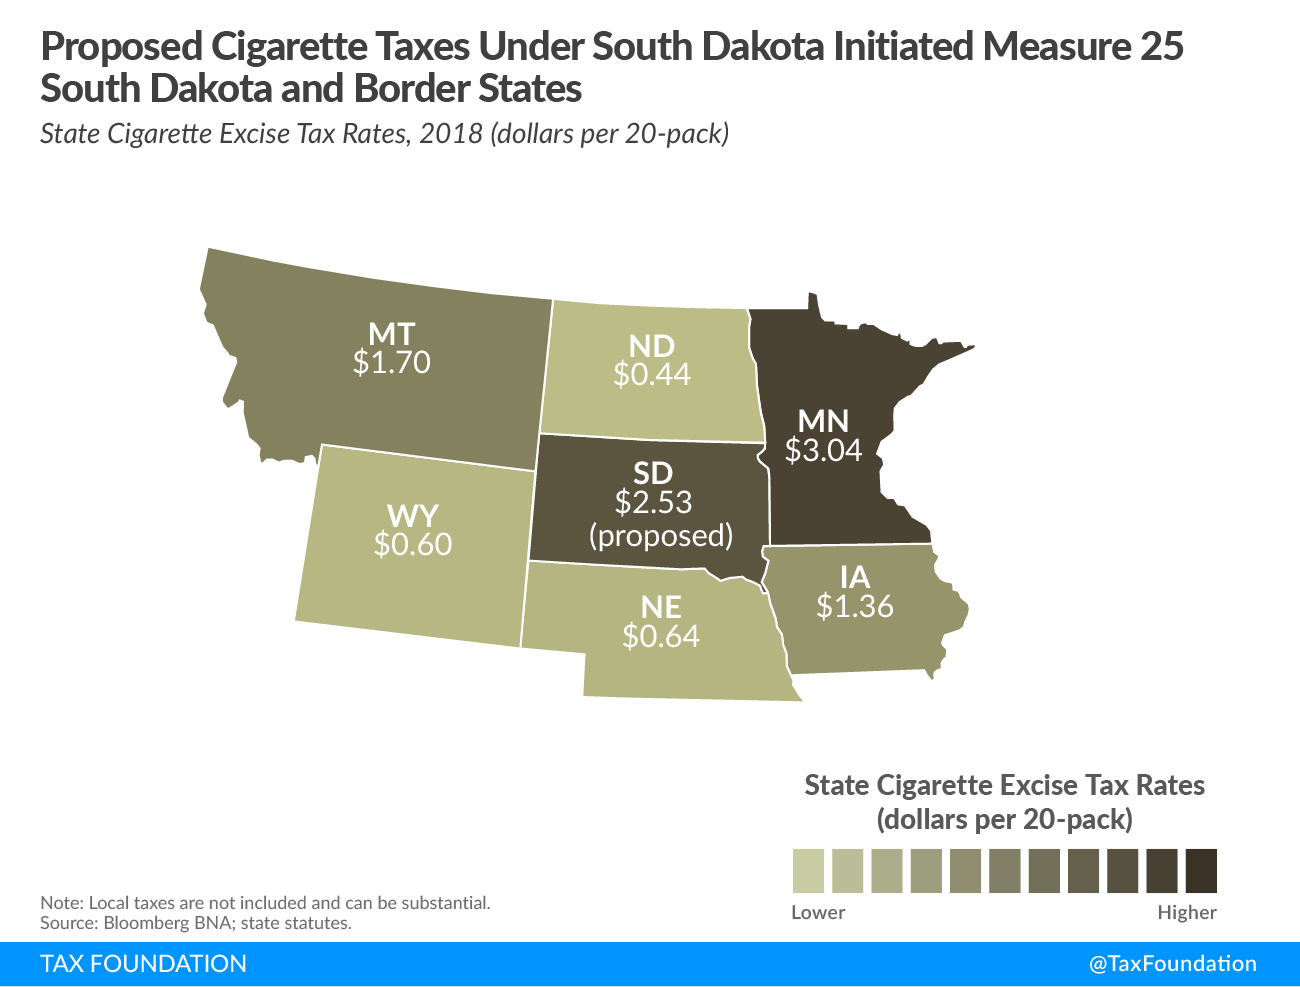 Proposed Cigarette Taxes Under South Dakota Initiated Measure 25 South Dakota and Border States